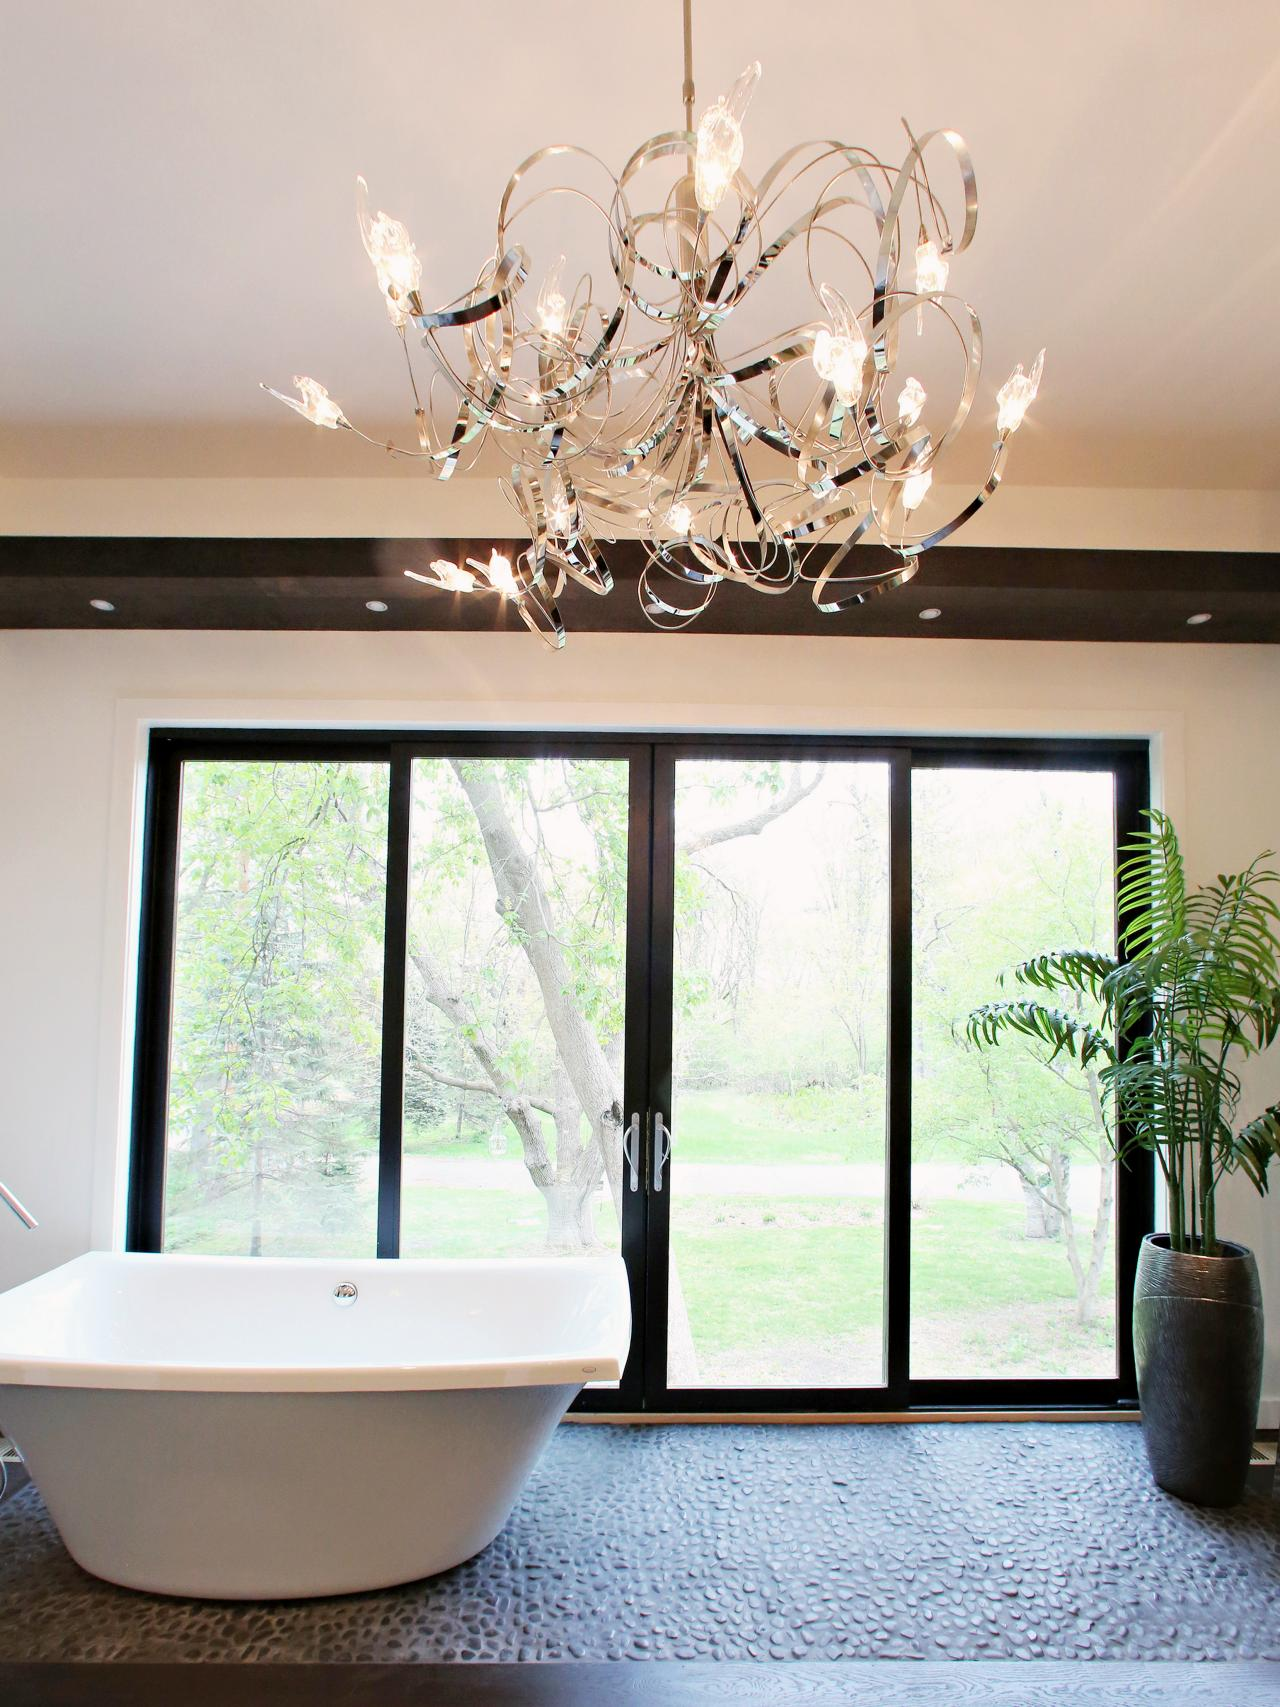 20 Luxurious Bathrooms with Elegant Chandelier Lighting